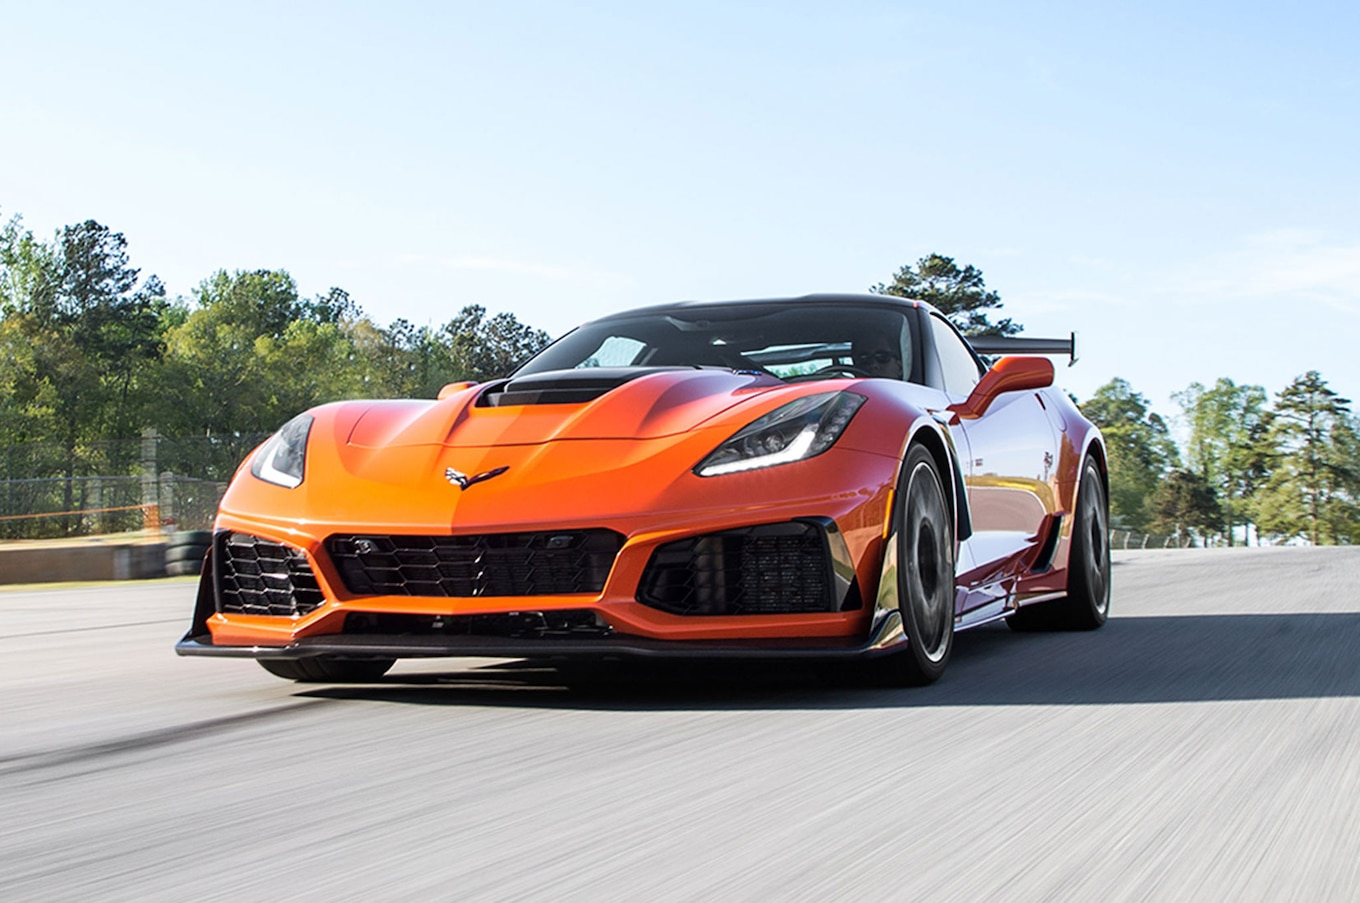 Cruze Car Hd Wallpaper 2019 Chevrolet Corvette Zr1 First Drive Keep Your Cool